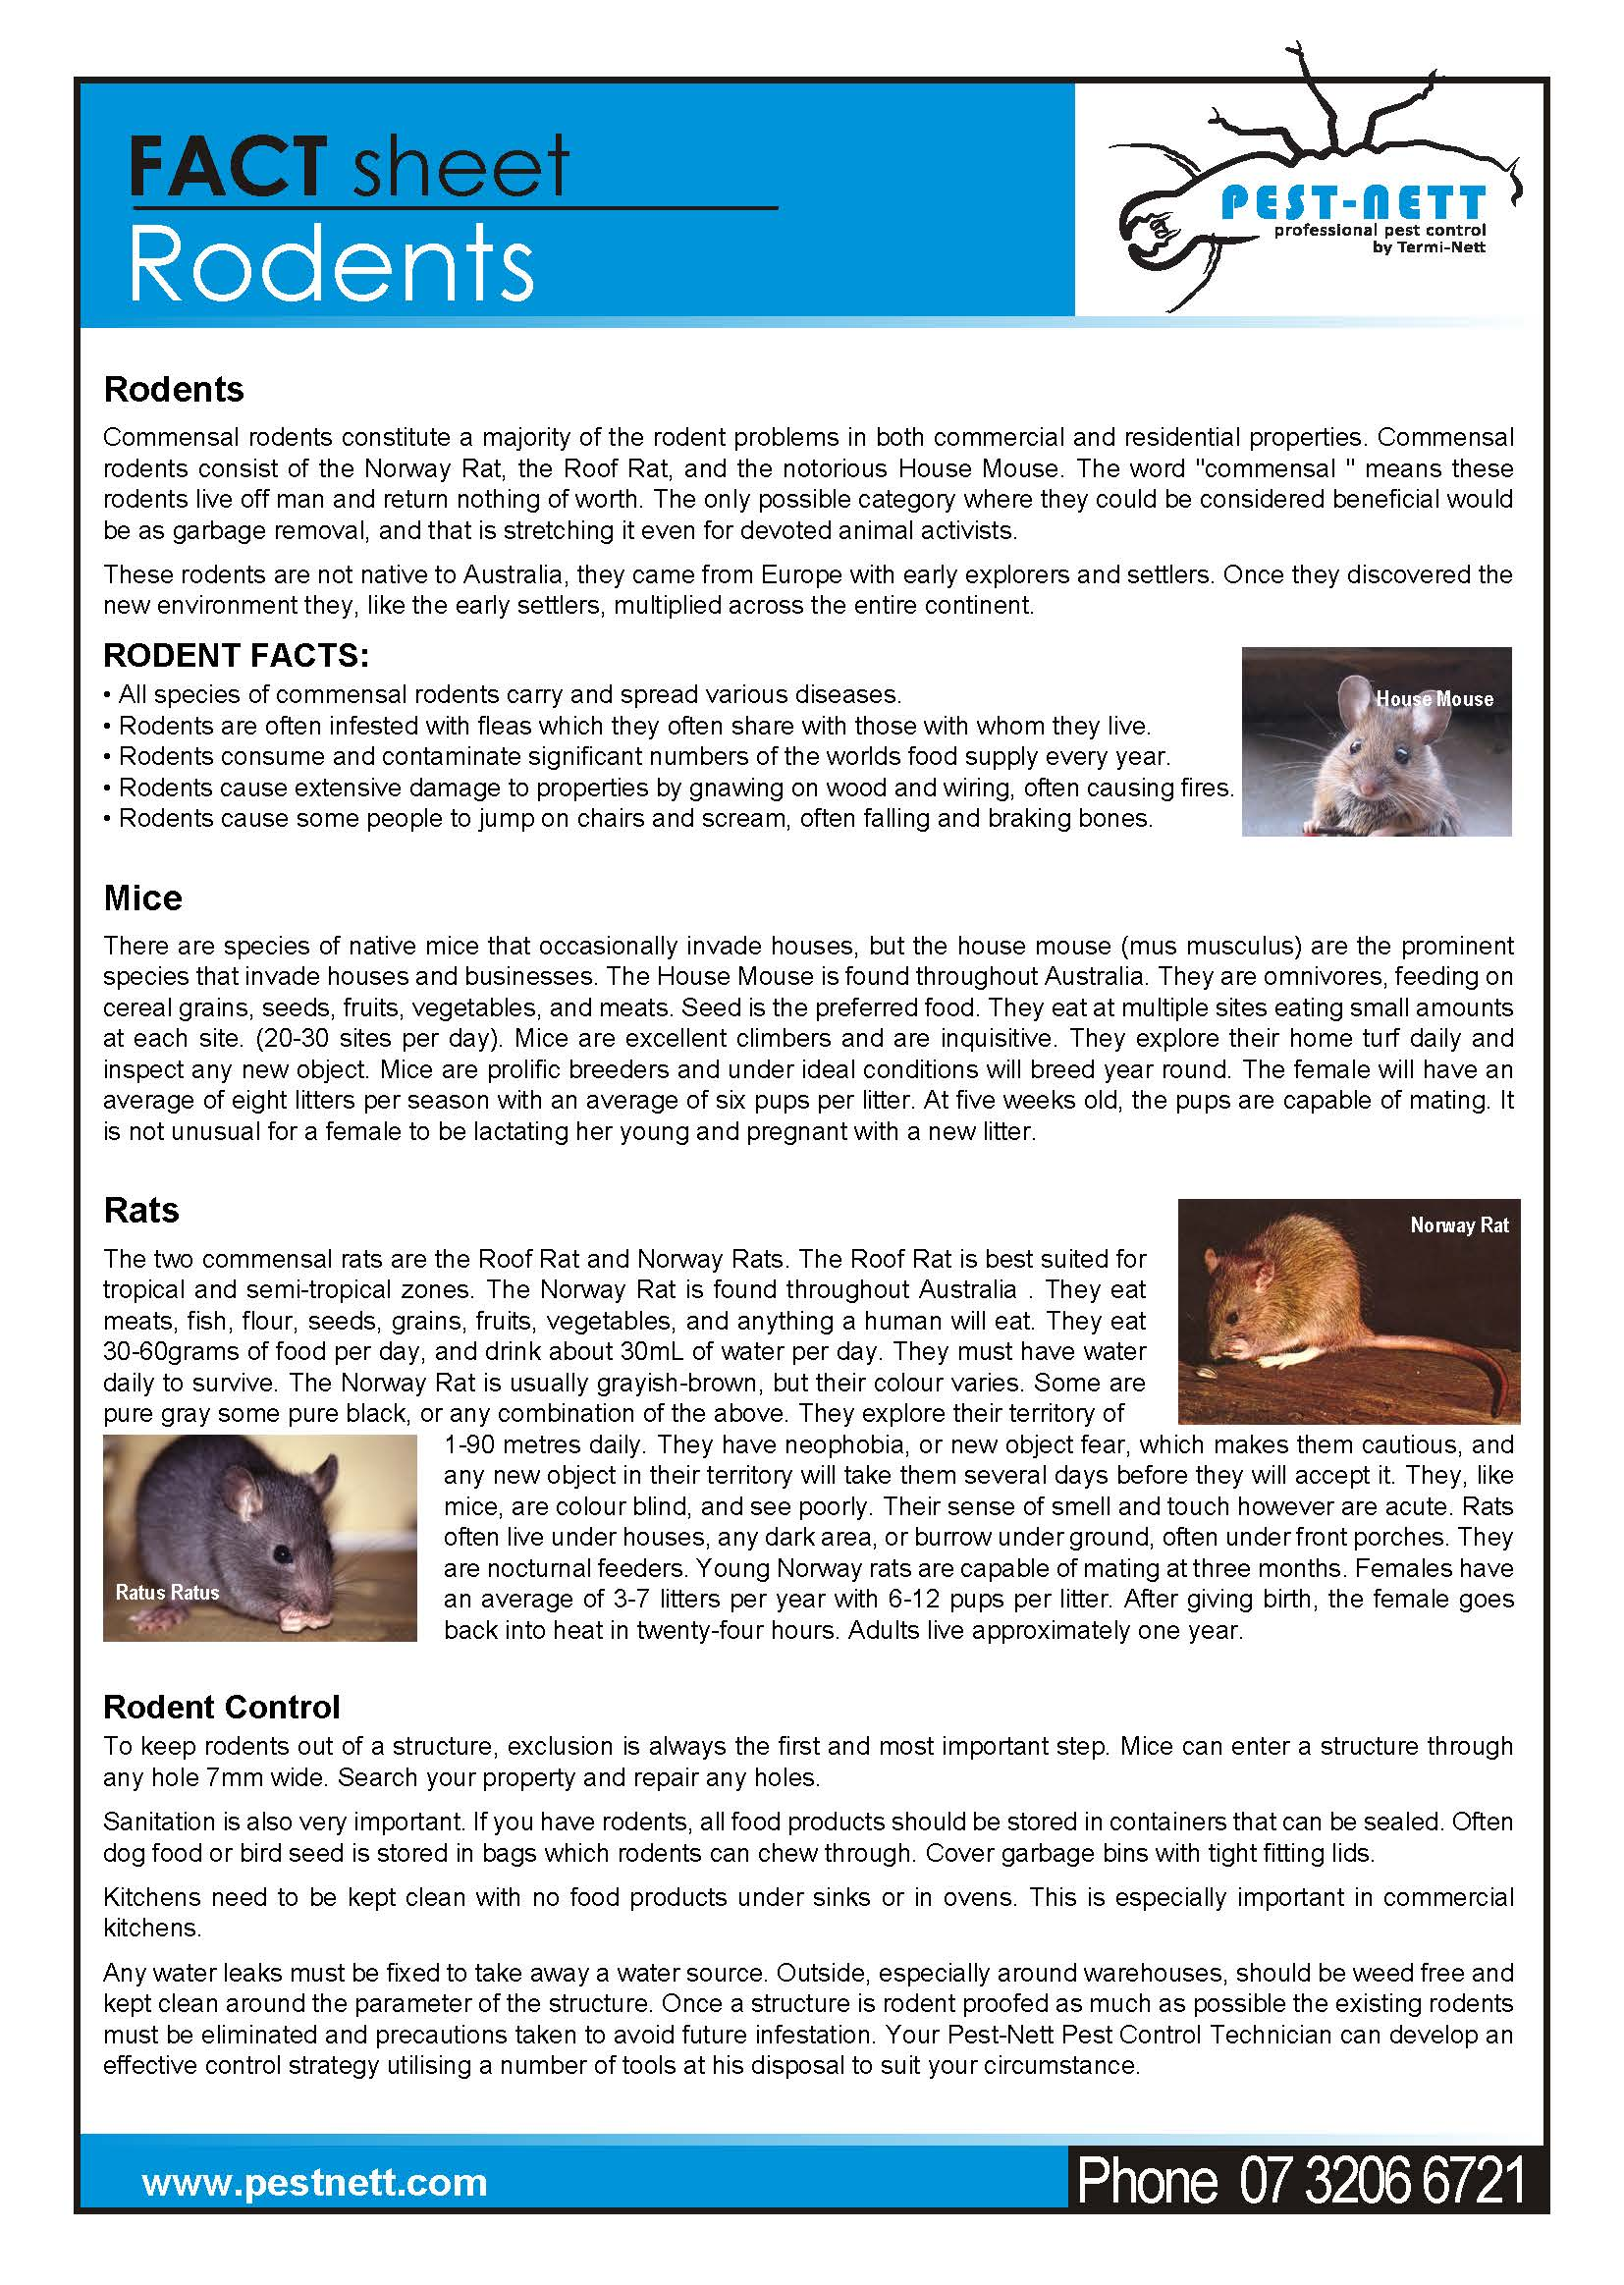 Fact Sheet Pest Nett Rodent Control